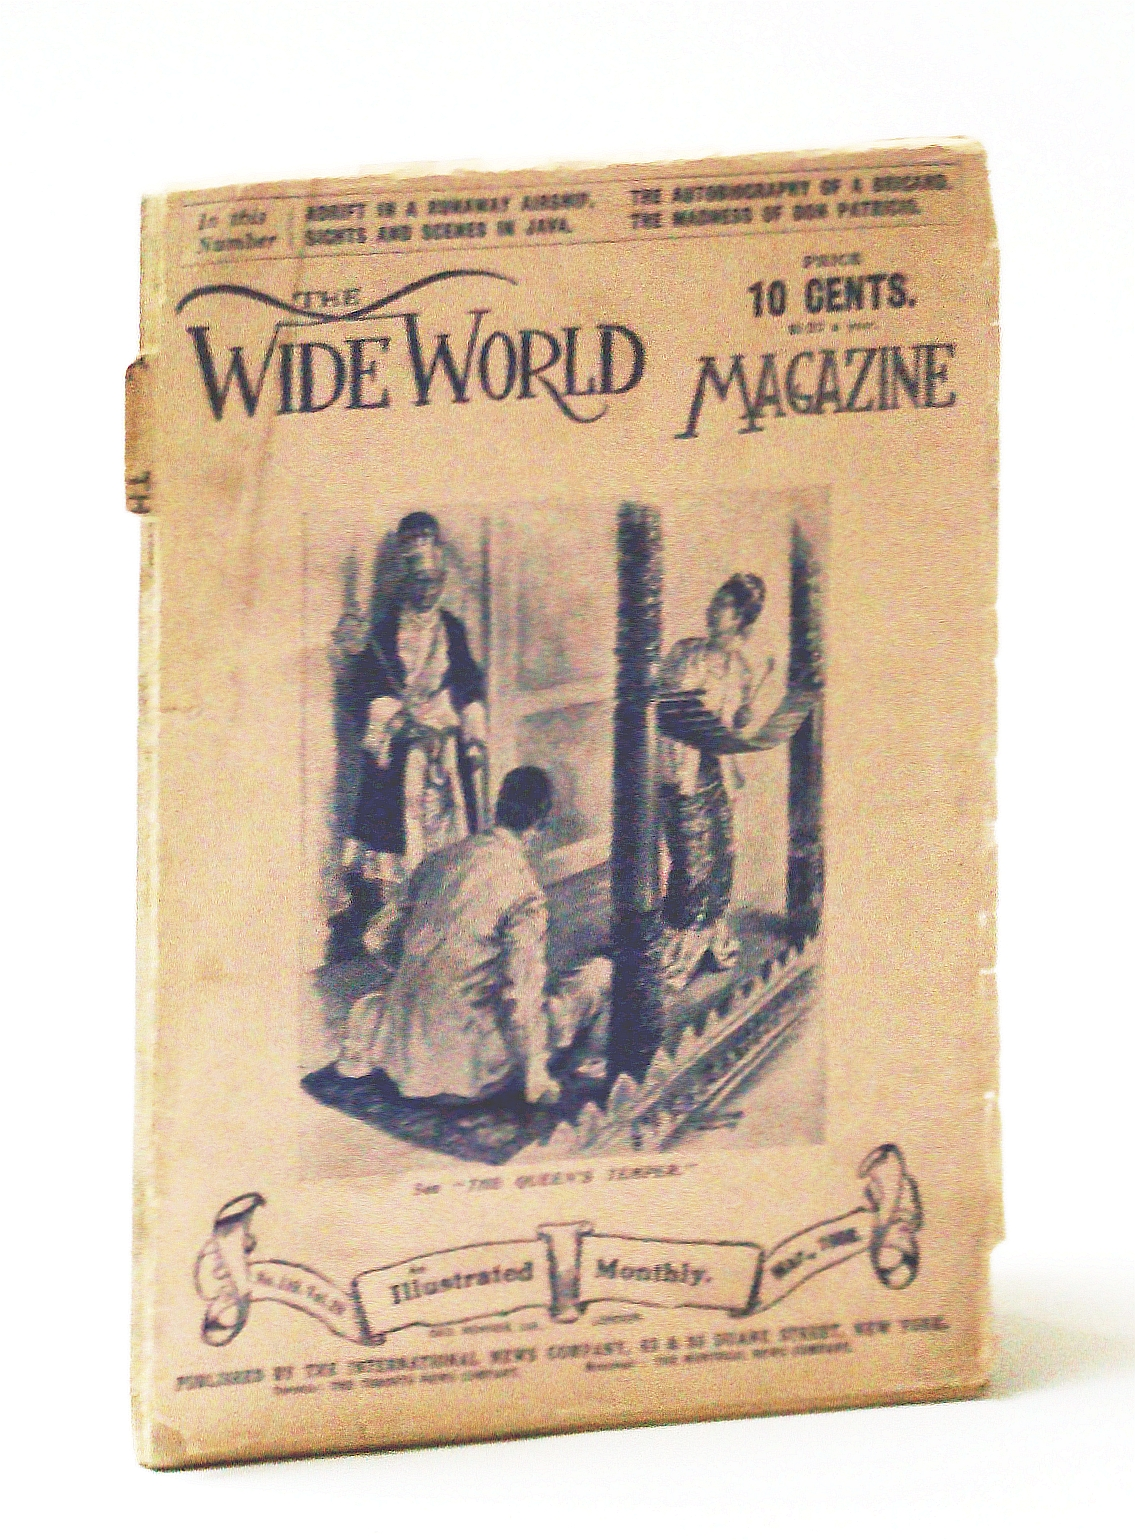 Image for The Wide World Magazine, March (Mar.) 1908, No. 119, Vol. 20 - My Experiences in the Great Russian Famine